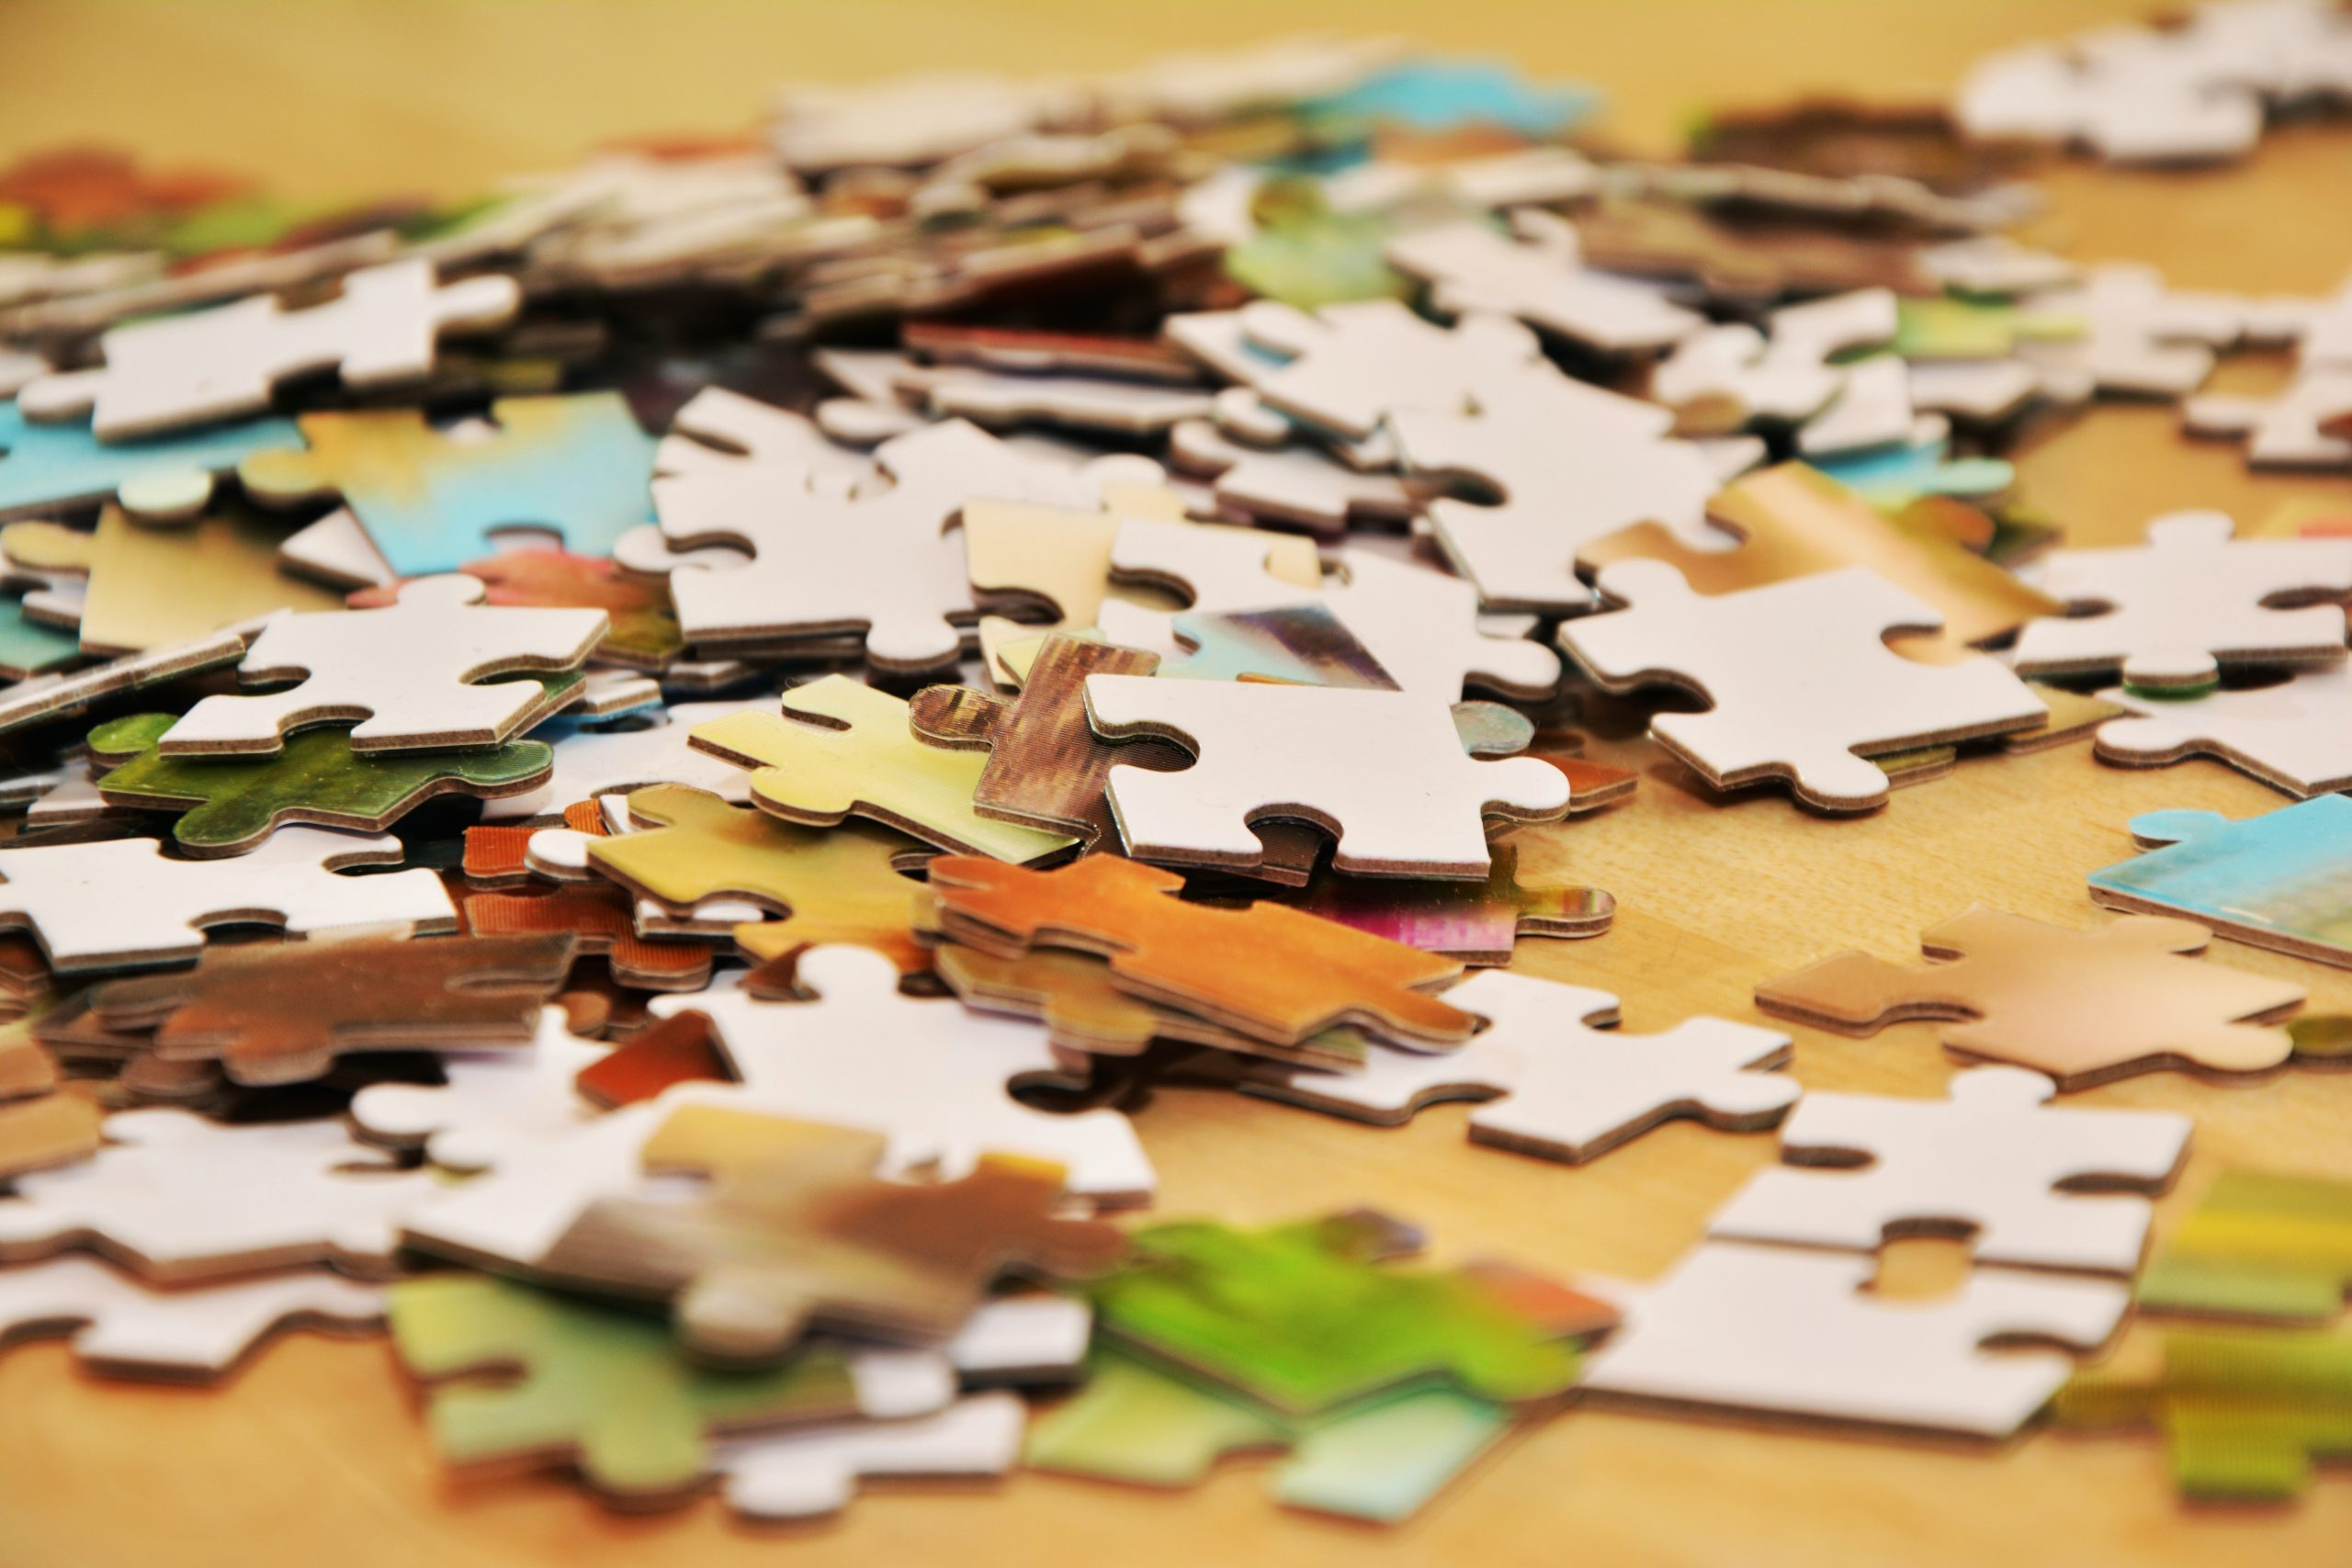 Different colored puzzle pieces scattered on a tabletop